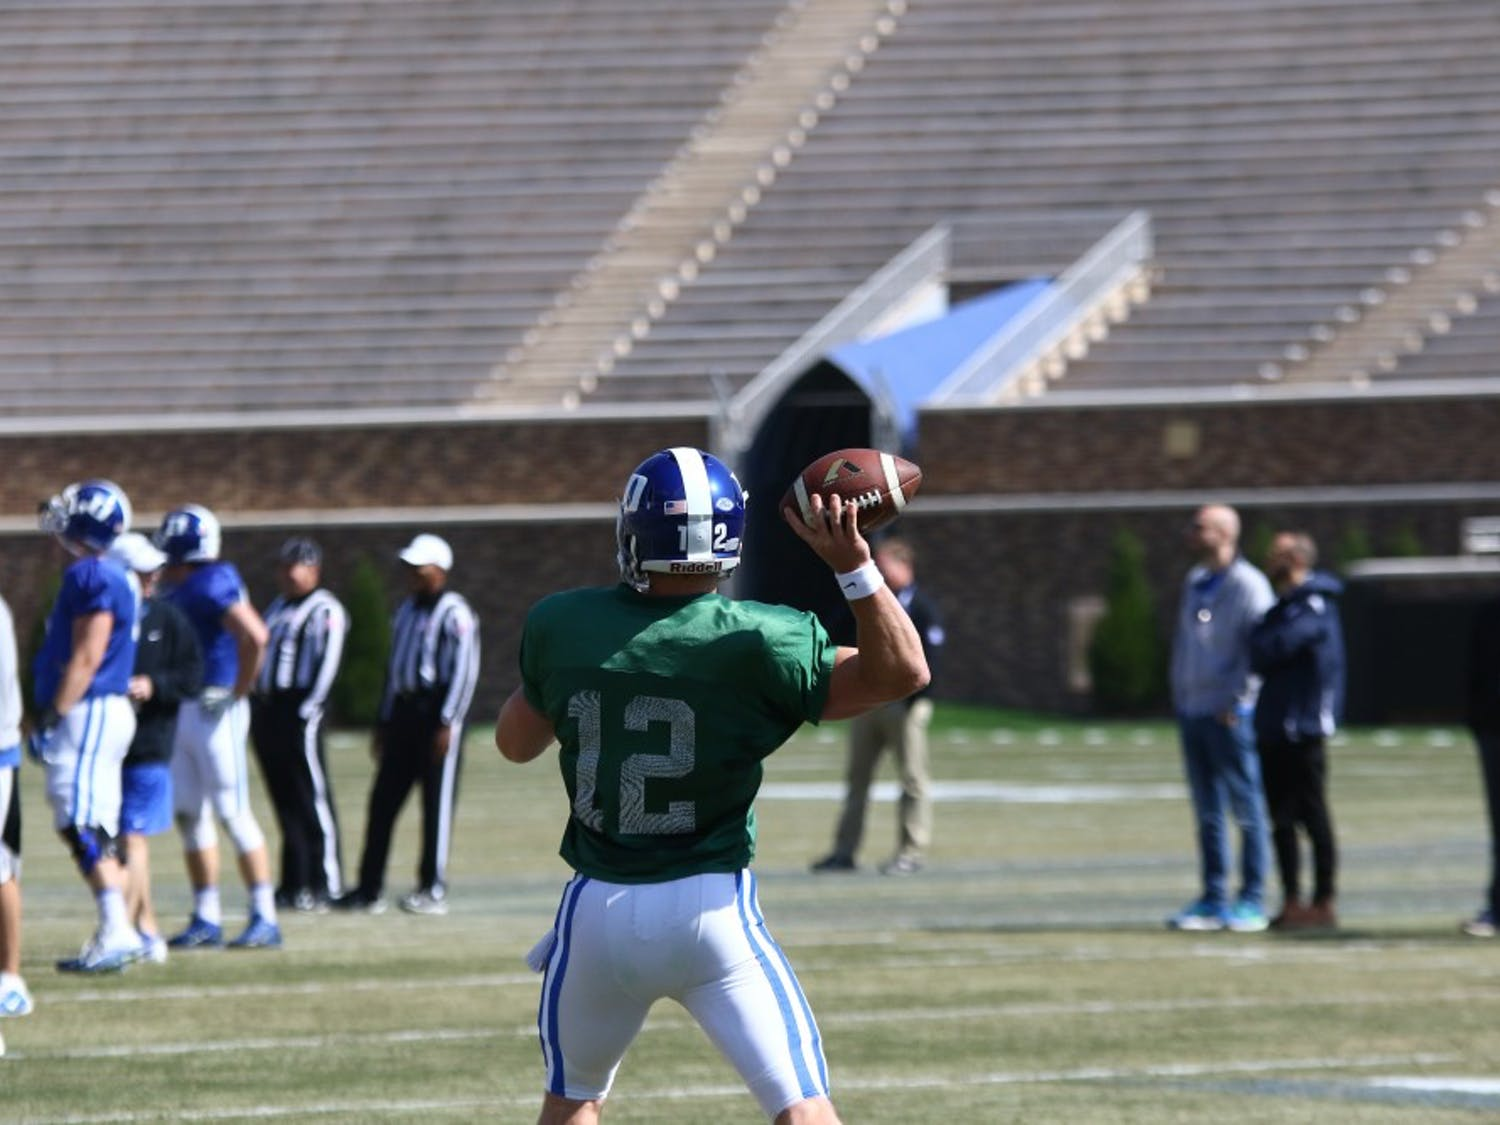 Parker Boehme—who took first-team reps during Duke's spring camp with starter Thomas Sirk sidelined—completed seven of 10 passes for 66 yards Saturday.